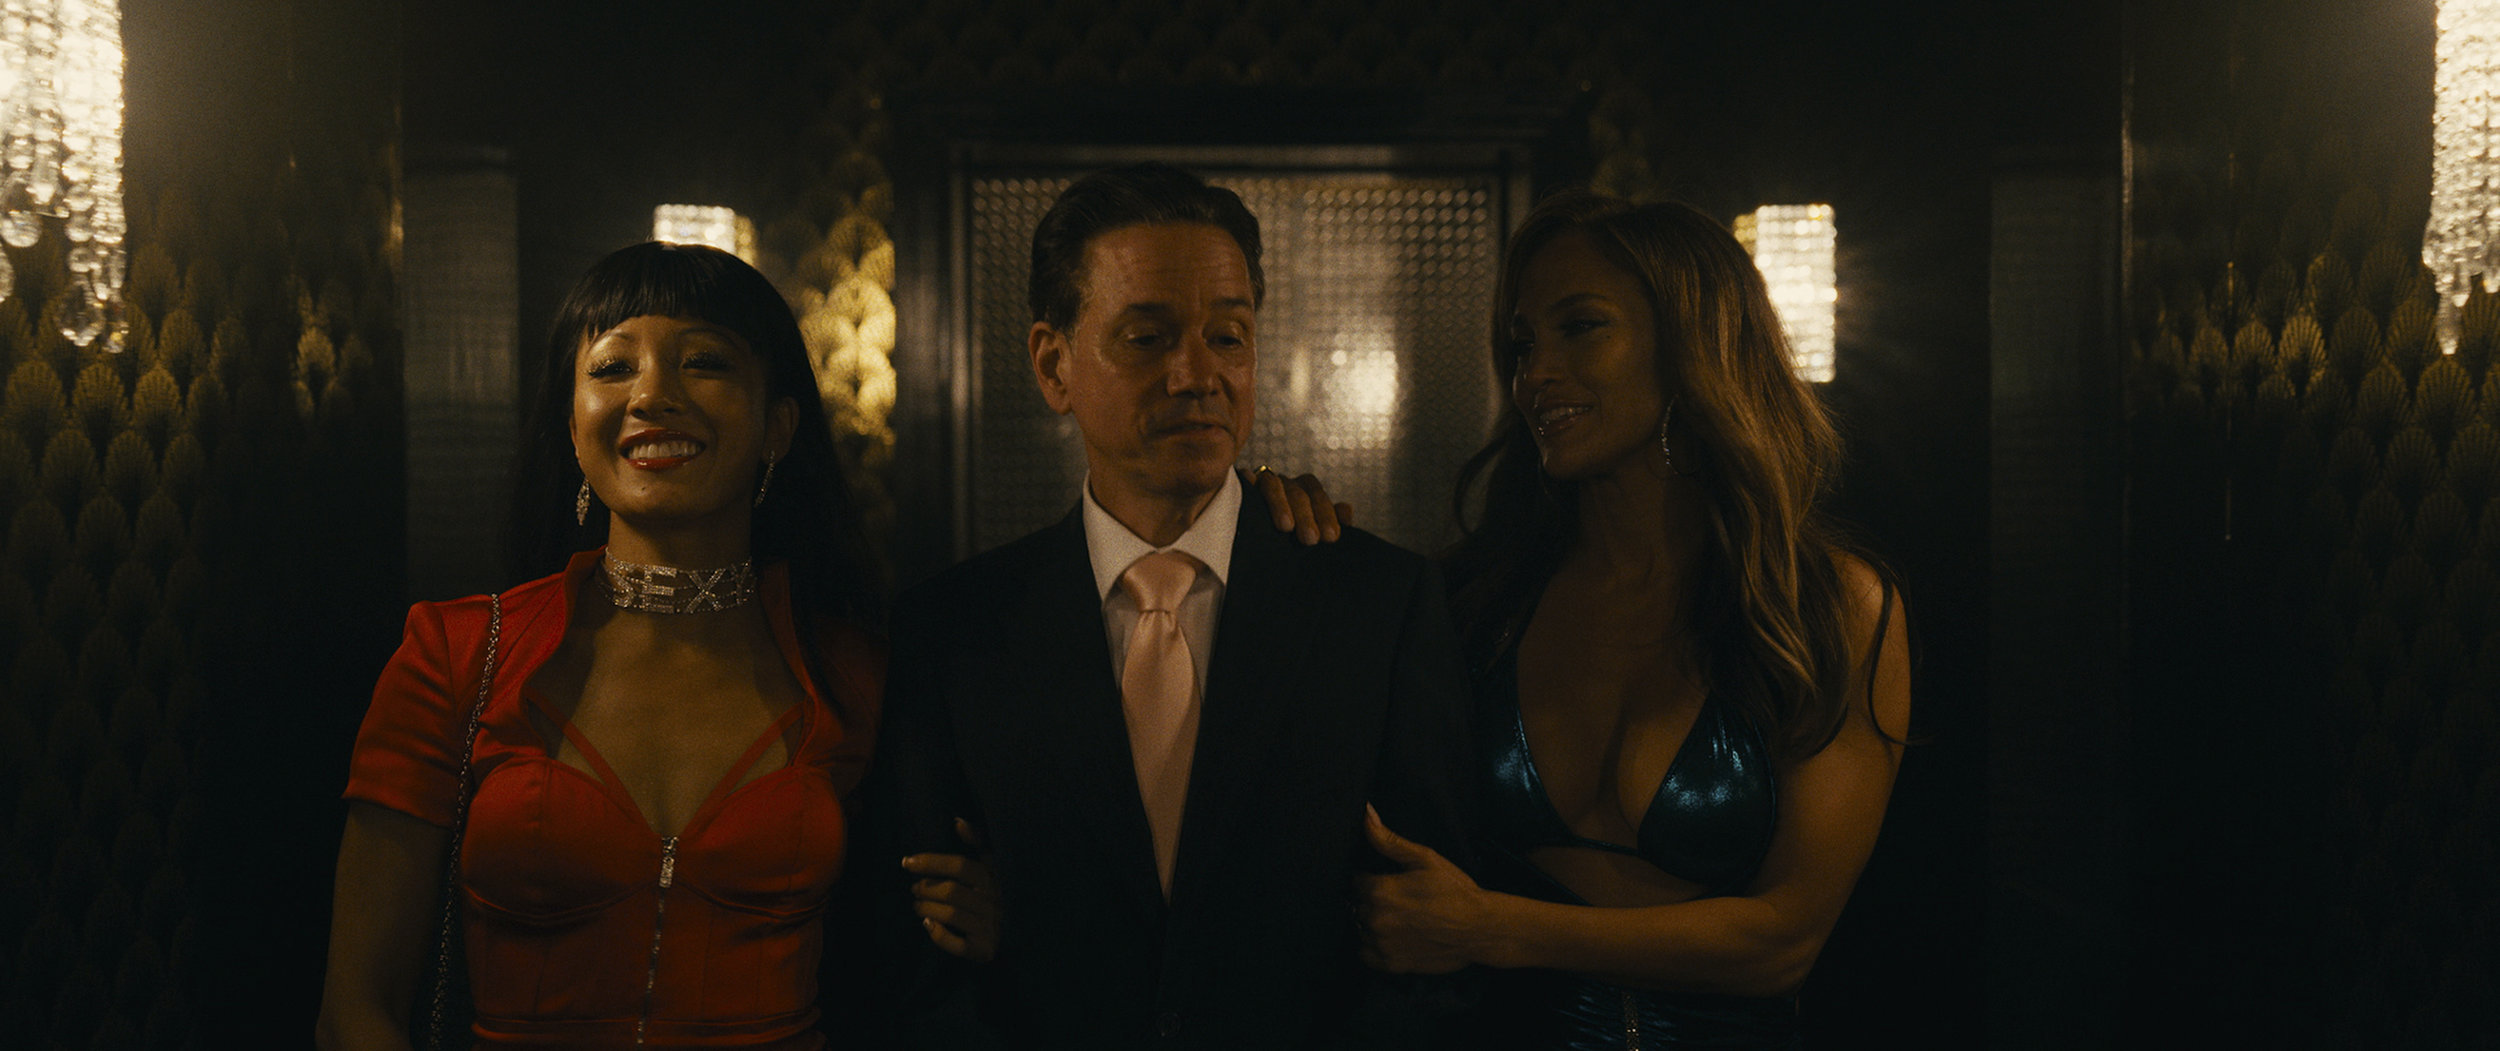 """Strippers-turned-con artists Destiny (Constance Wu, left) and Ramona (Jennifer Lopez, right) work their charms on a Wall Street executive (Frank Whaley) in the true-crime drama """"Hustlers."""" (Photo courtesy of STX Films.)"""